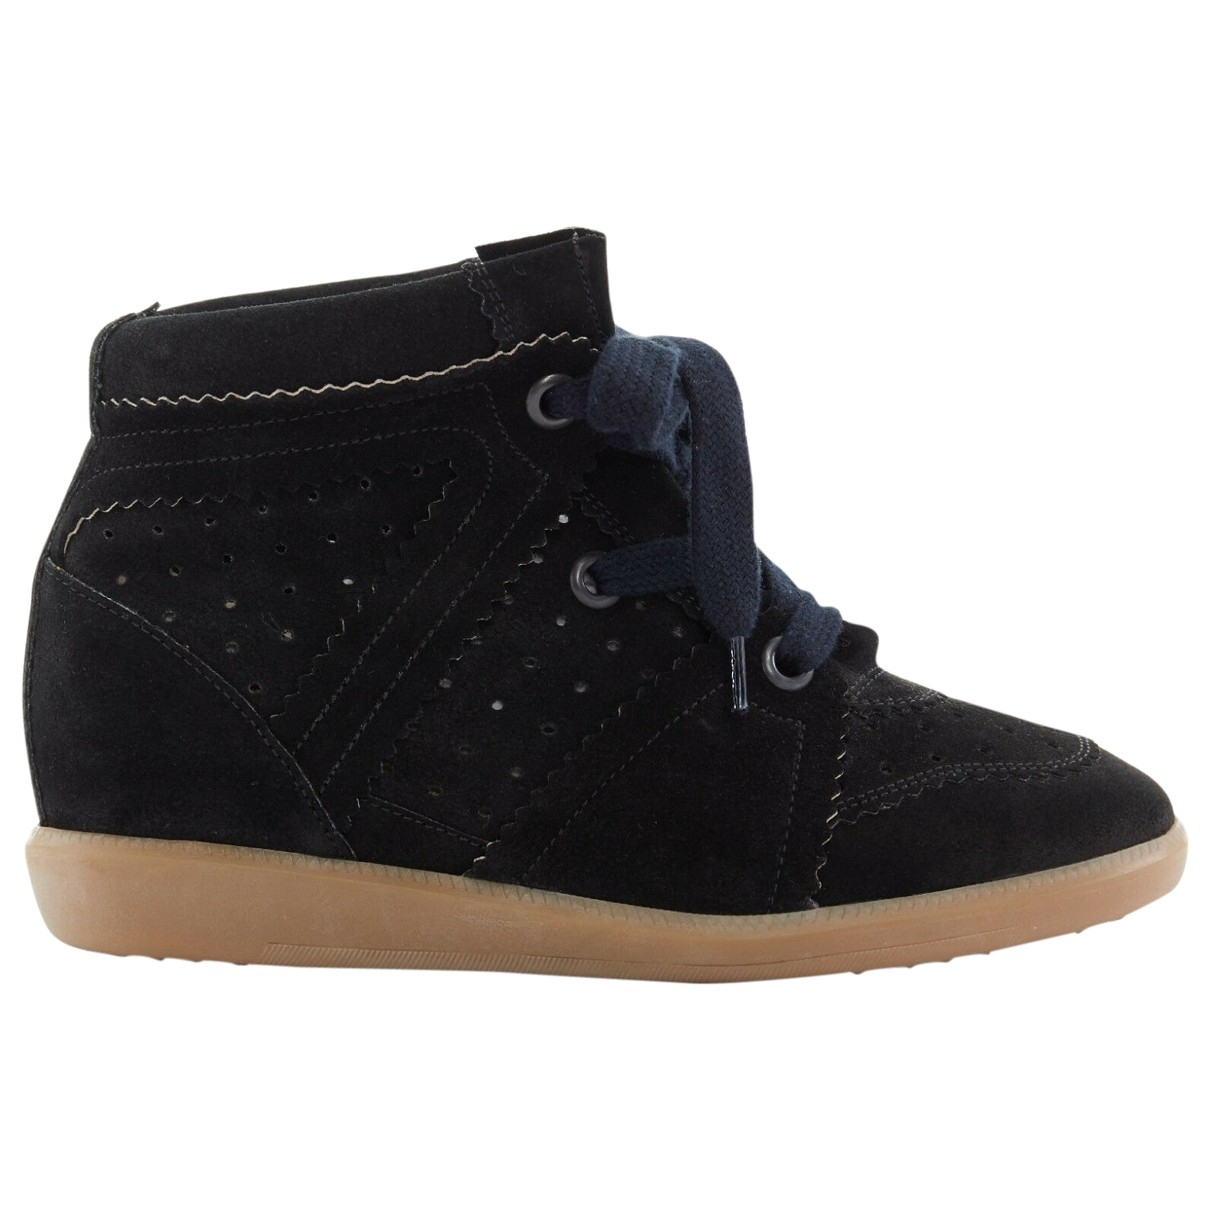 Isabel Marant Betty Black Suede Trainers for Women 38 EU